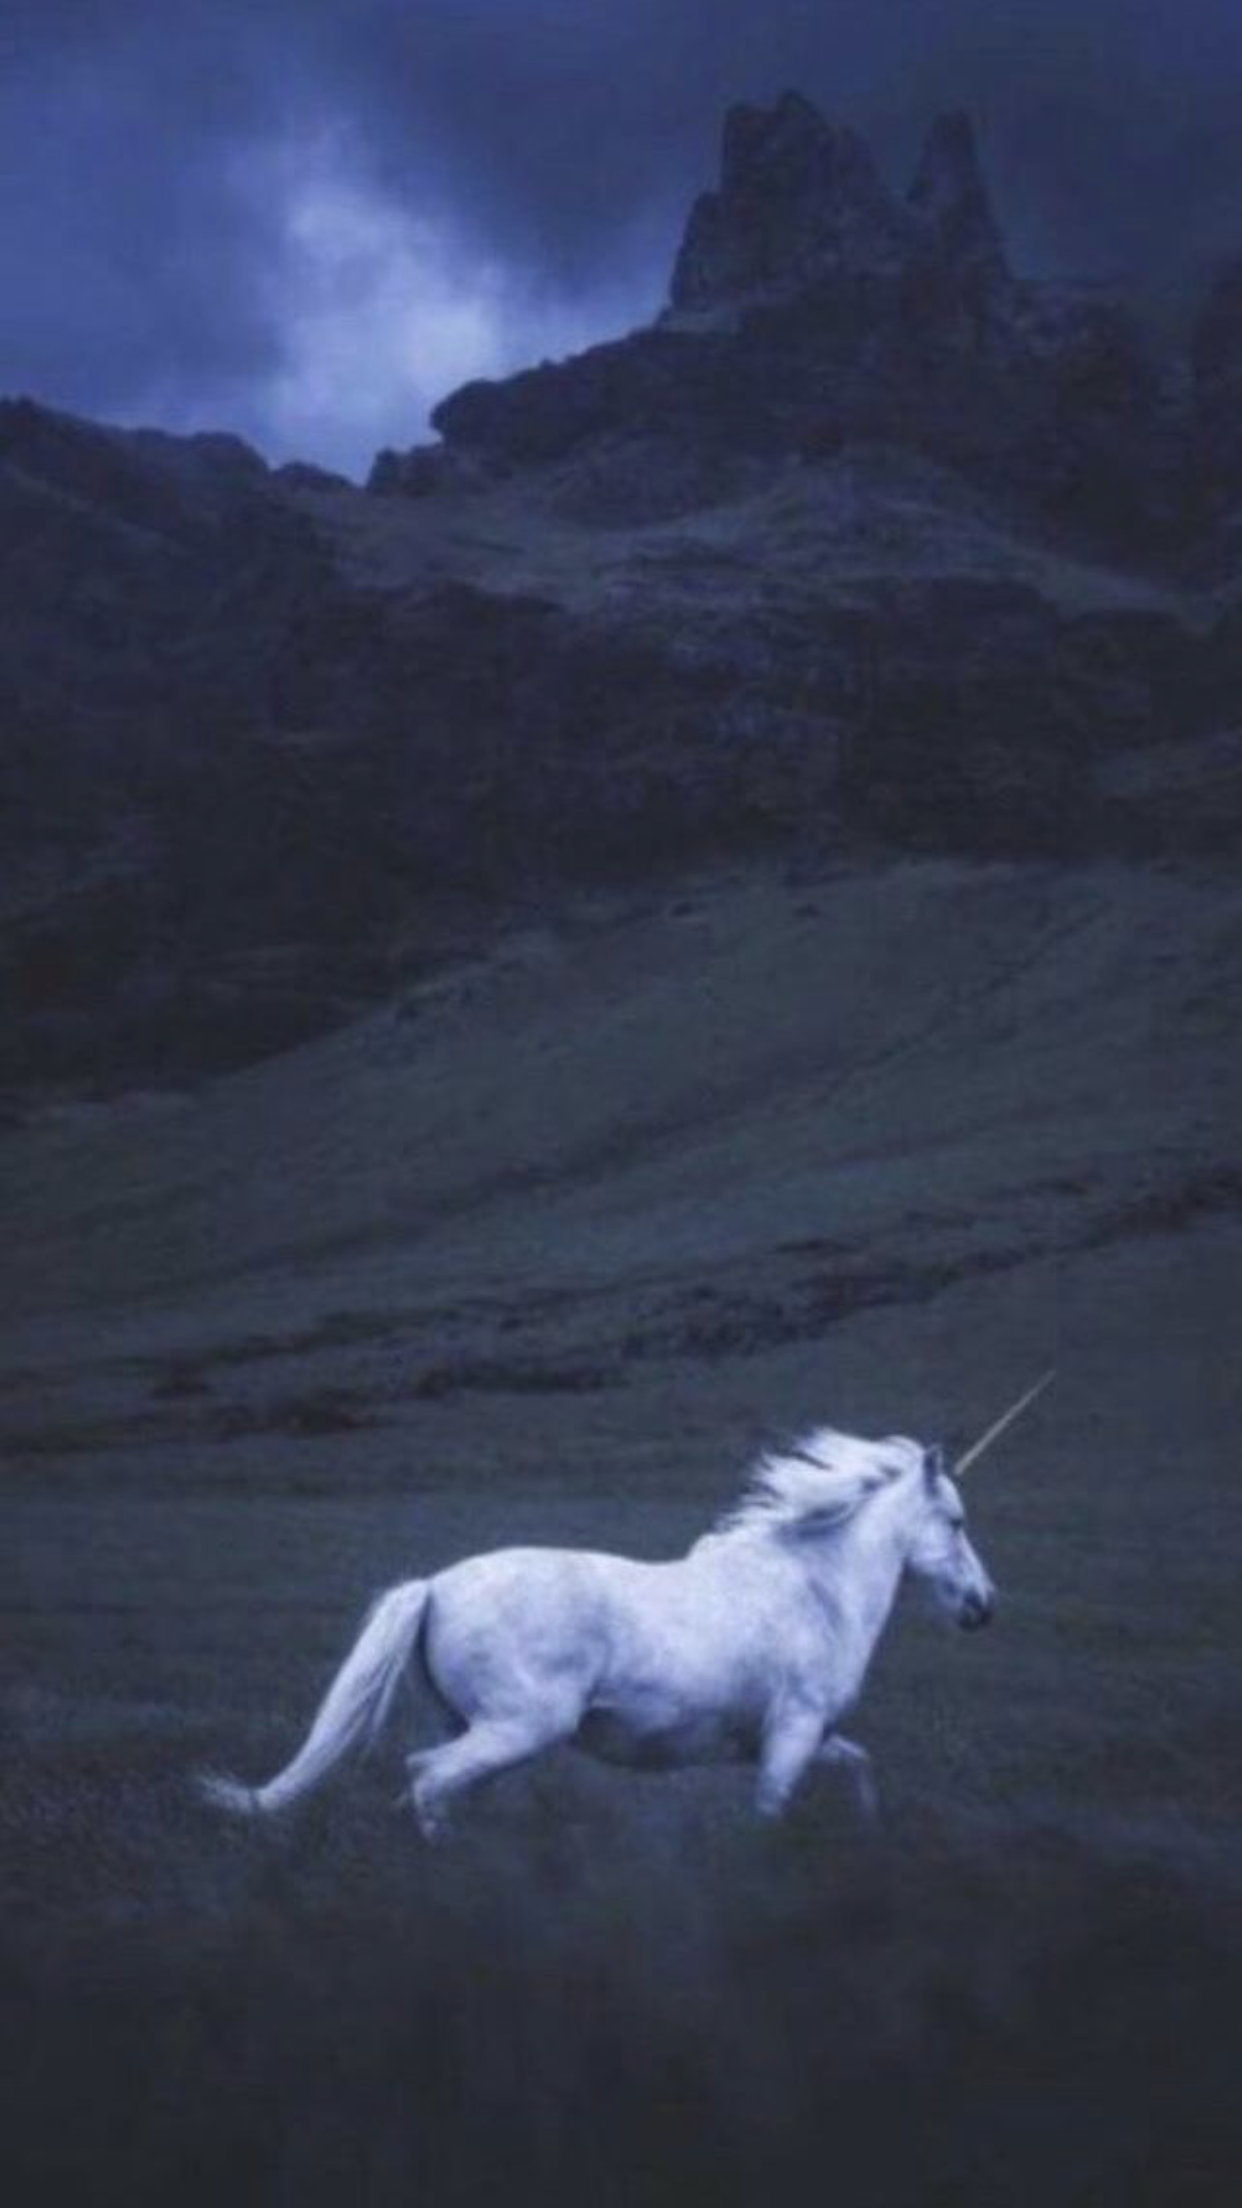 Pin By لويمش On خلفيات Pinterest Horses White Horses And Unicorn